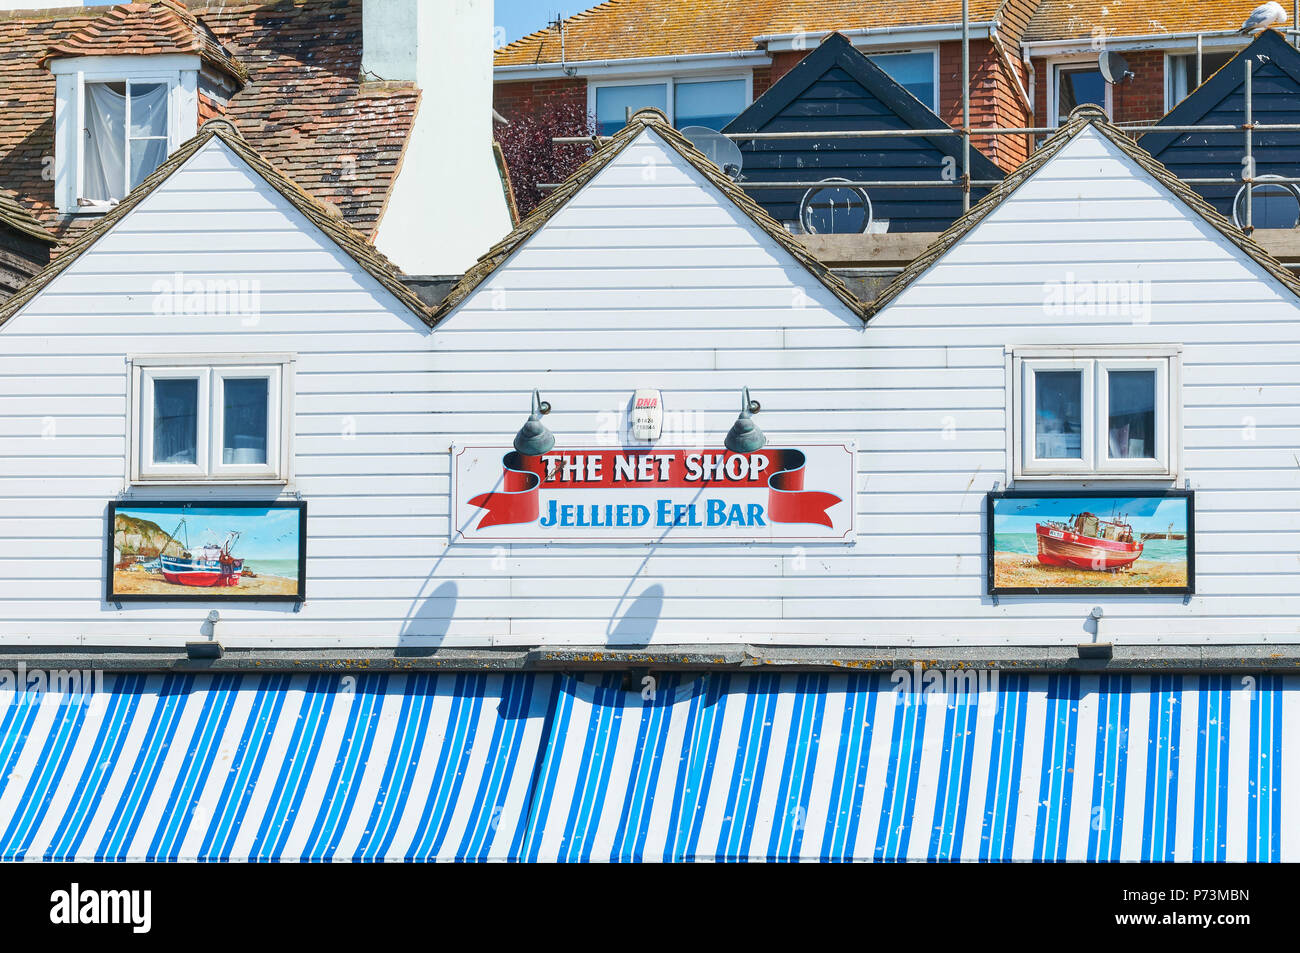 The Net Shop jellied eel bar in Hastings Old Town, on the Sussex coast, Great Britain - Stock Image